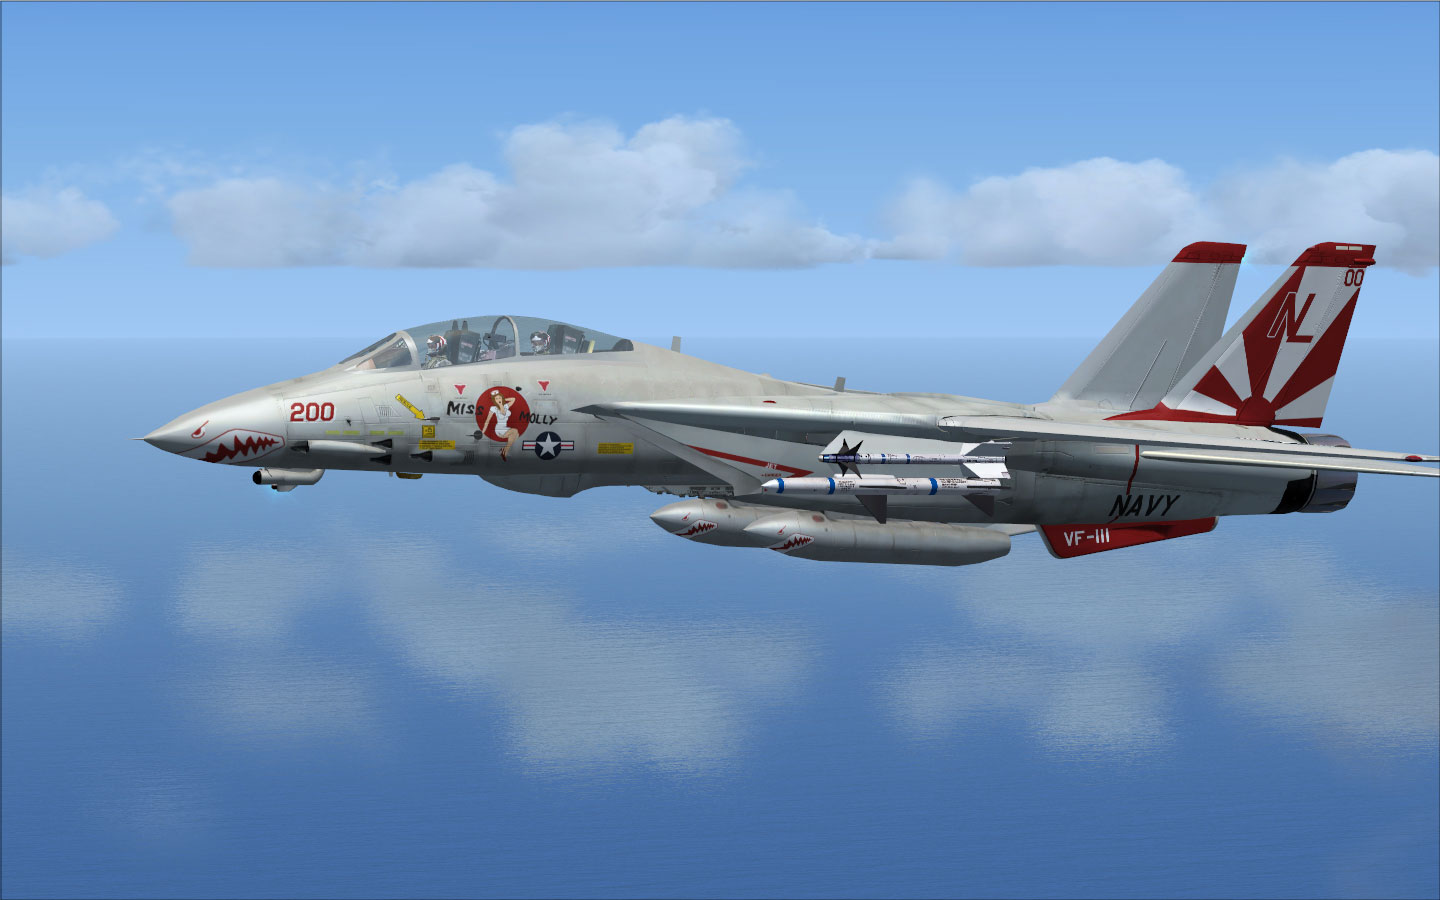 Tomcat Fsx Burn F 22 F22 Military Sky Hd Wallpapers On Pinterest 1440x900